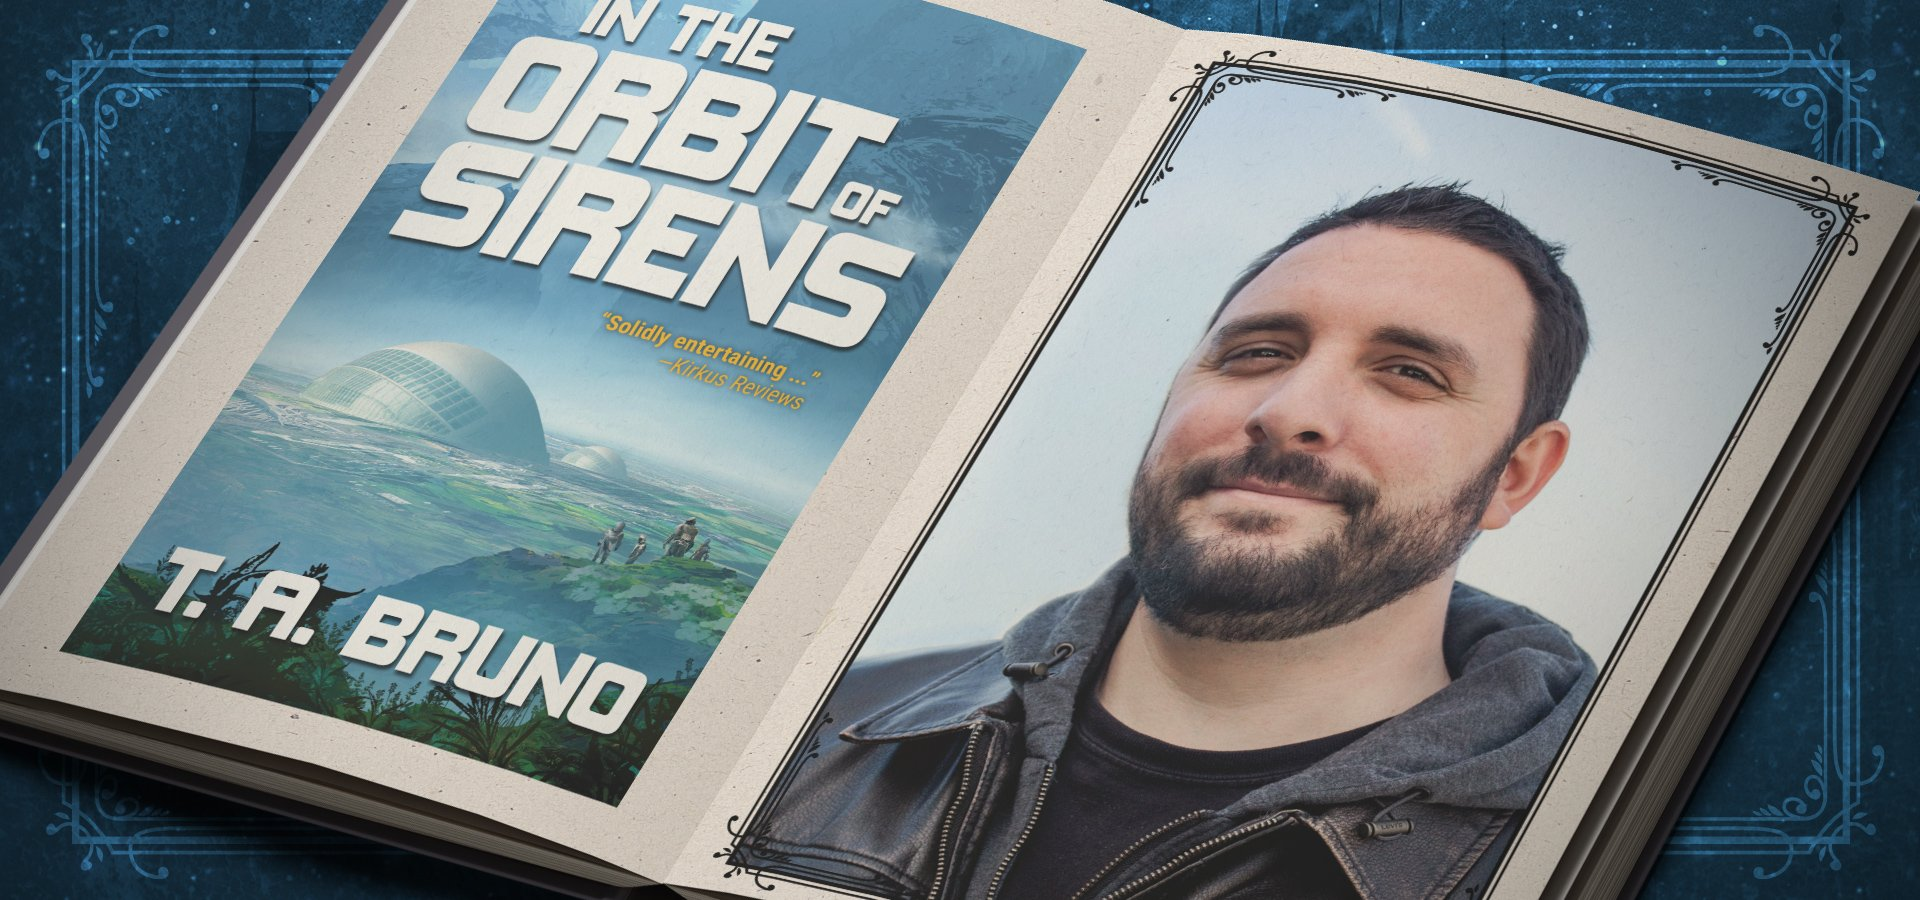 In the Orbit of Sirens by T. A. Bruno